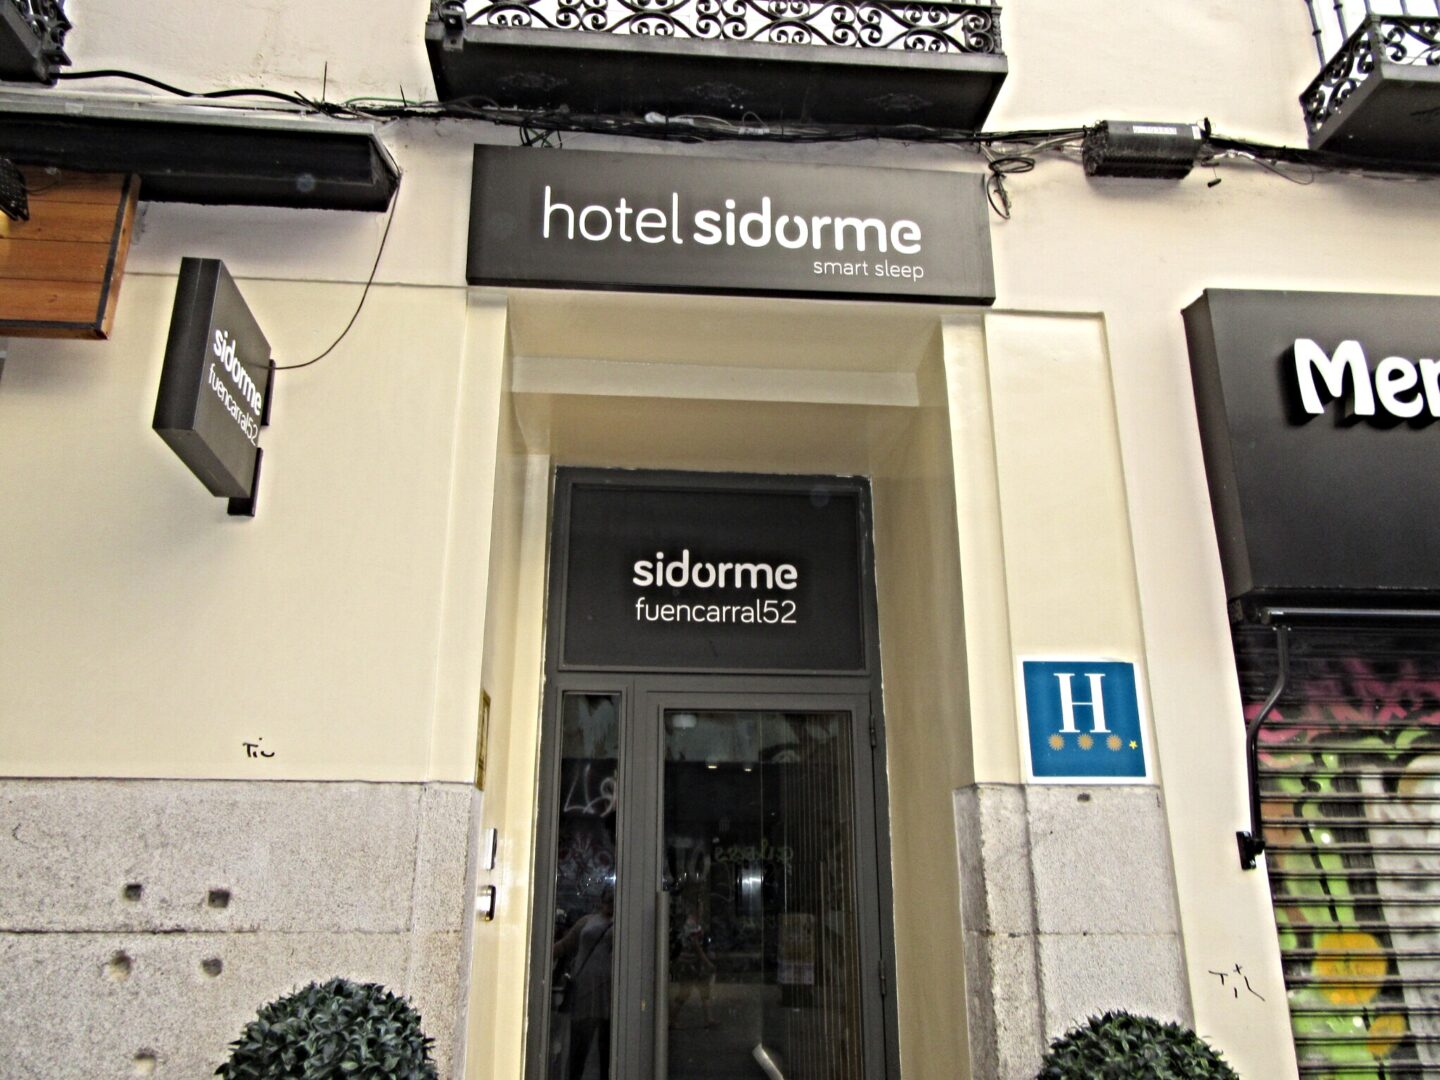 Spain: Sidorme Hotel Fuencarral 52, Madrid